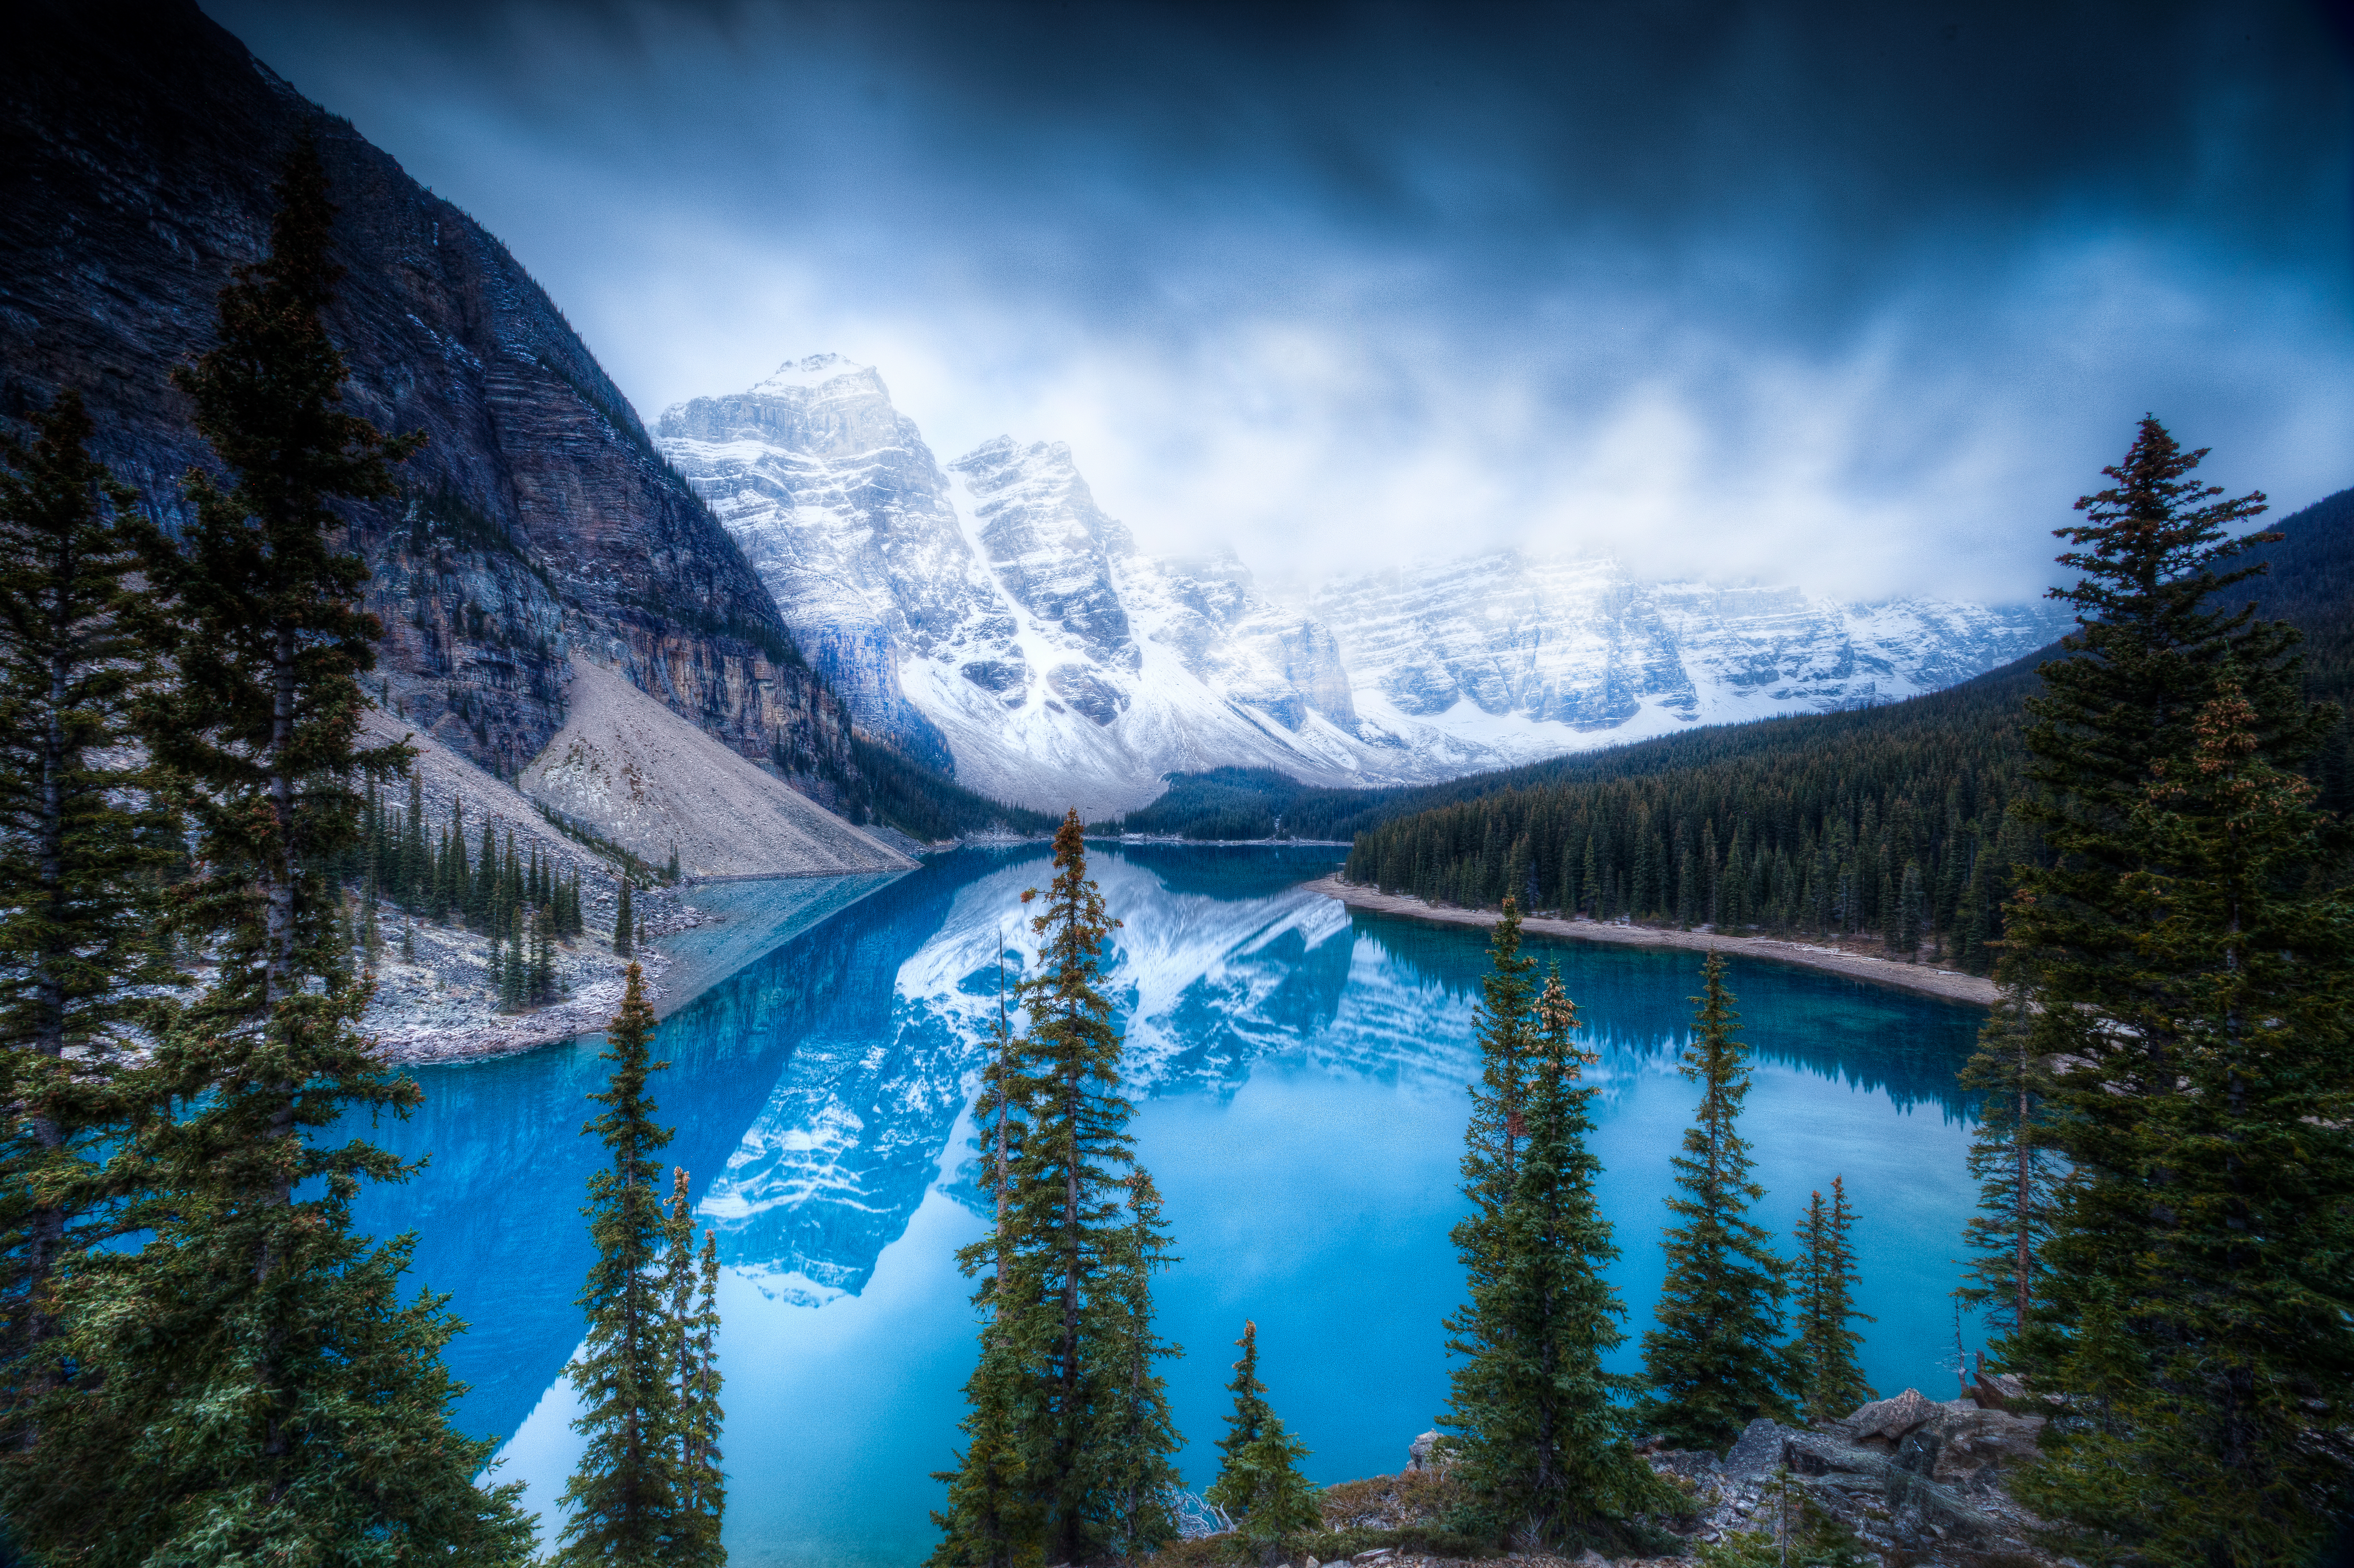 20 canadian rockies hd wallpapers | background images - wallpaper abyss